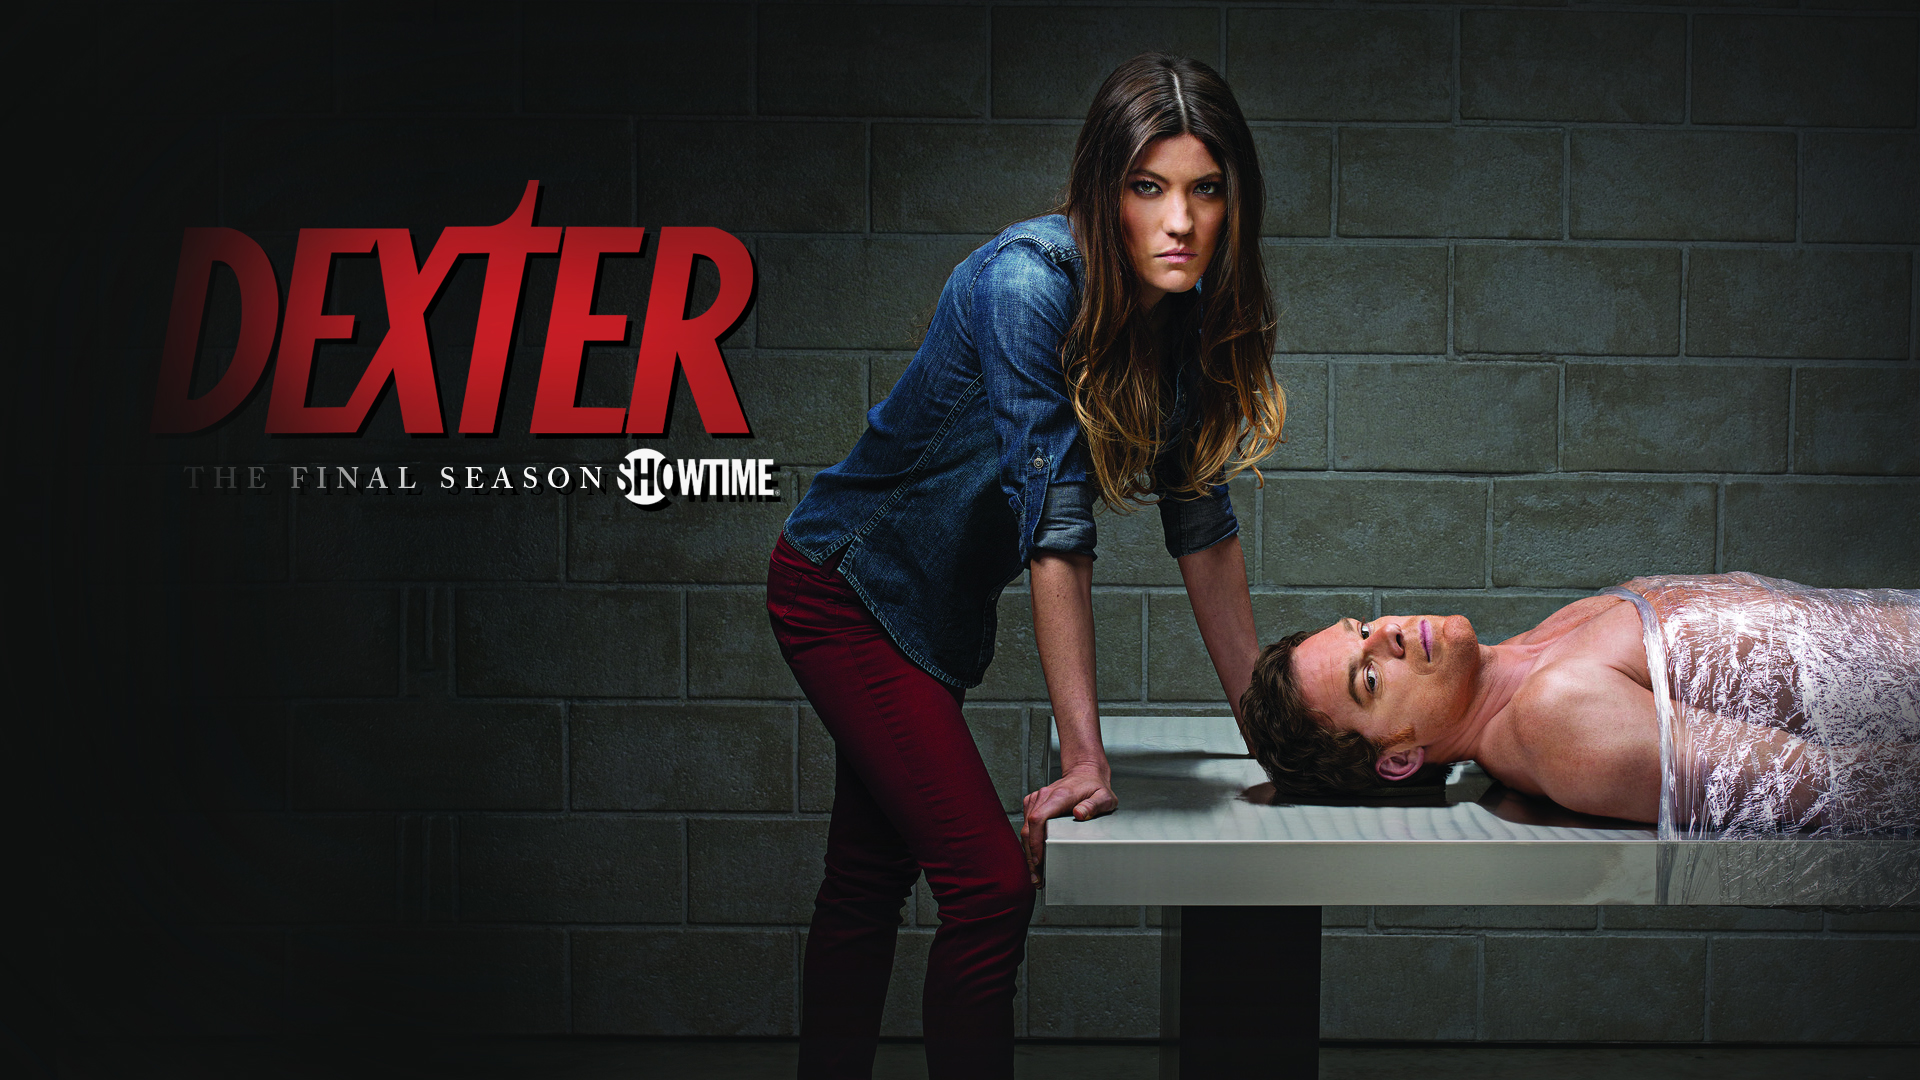 dexter returns with the final season 8 the collective